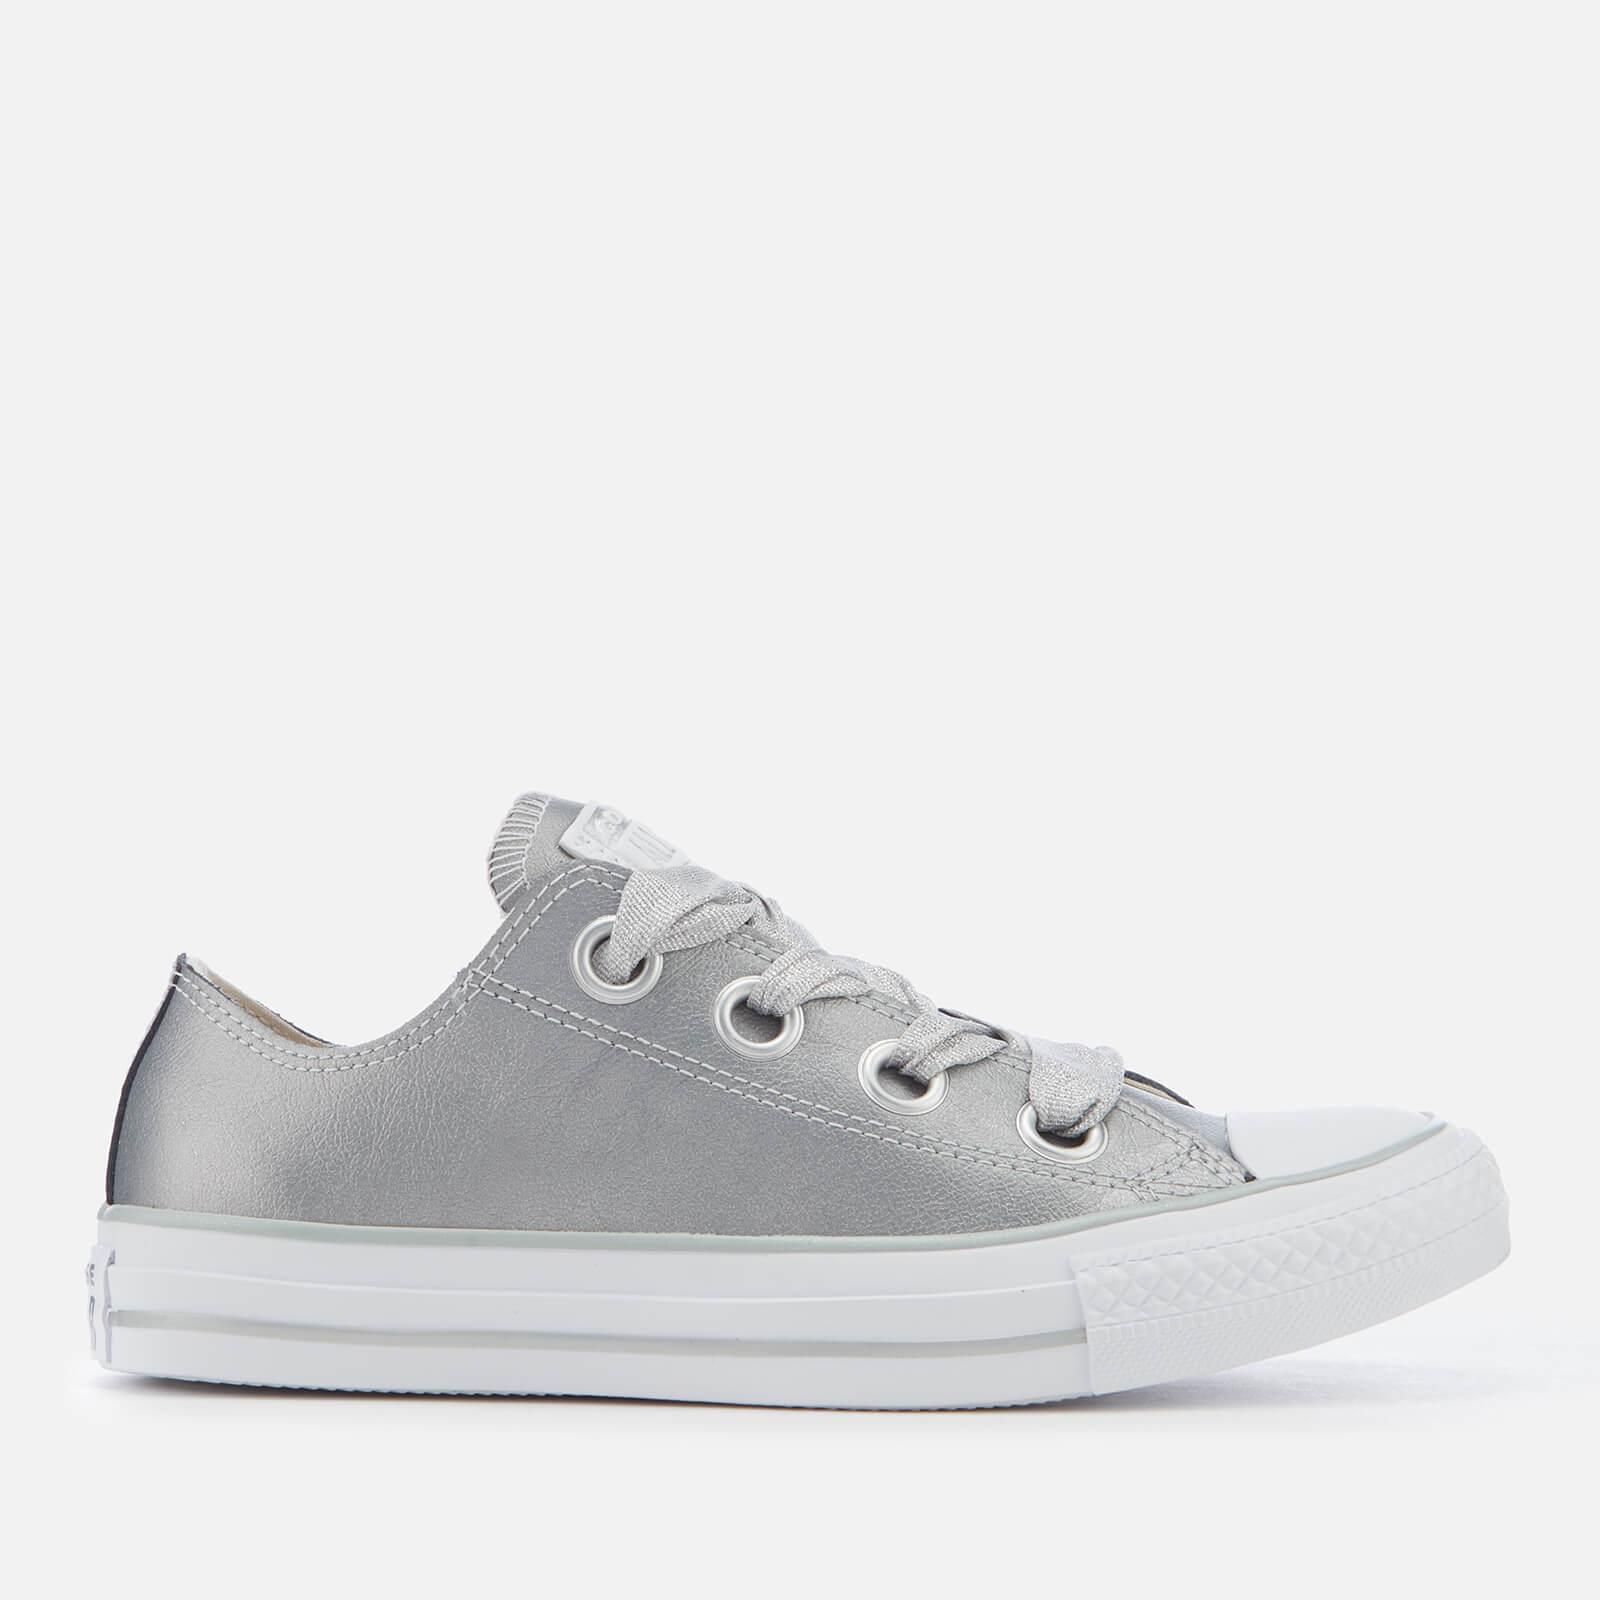 af1feb61d1bc62 Converse. Women s Metallic Chuck Taylor All Star Big Eyelets Ox Trainers